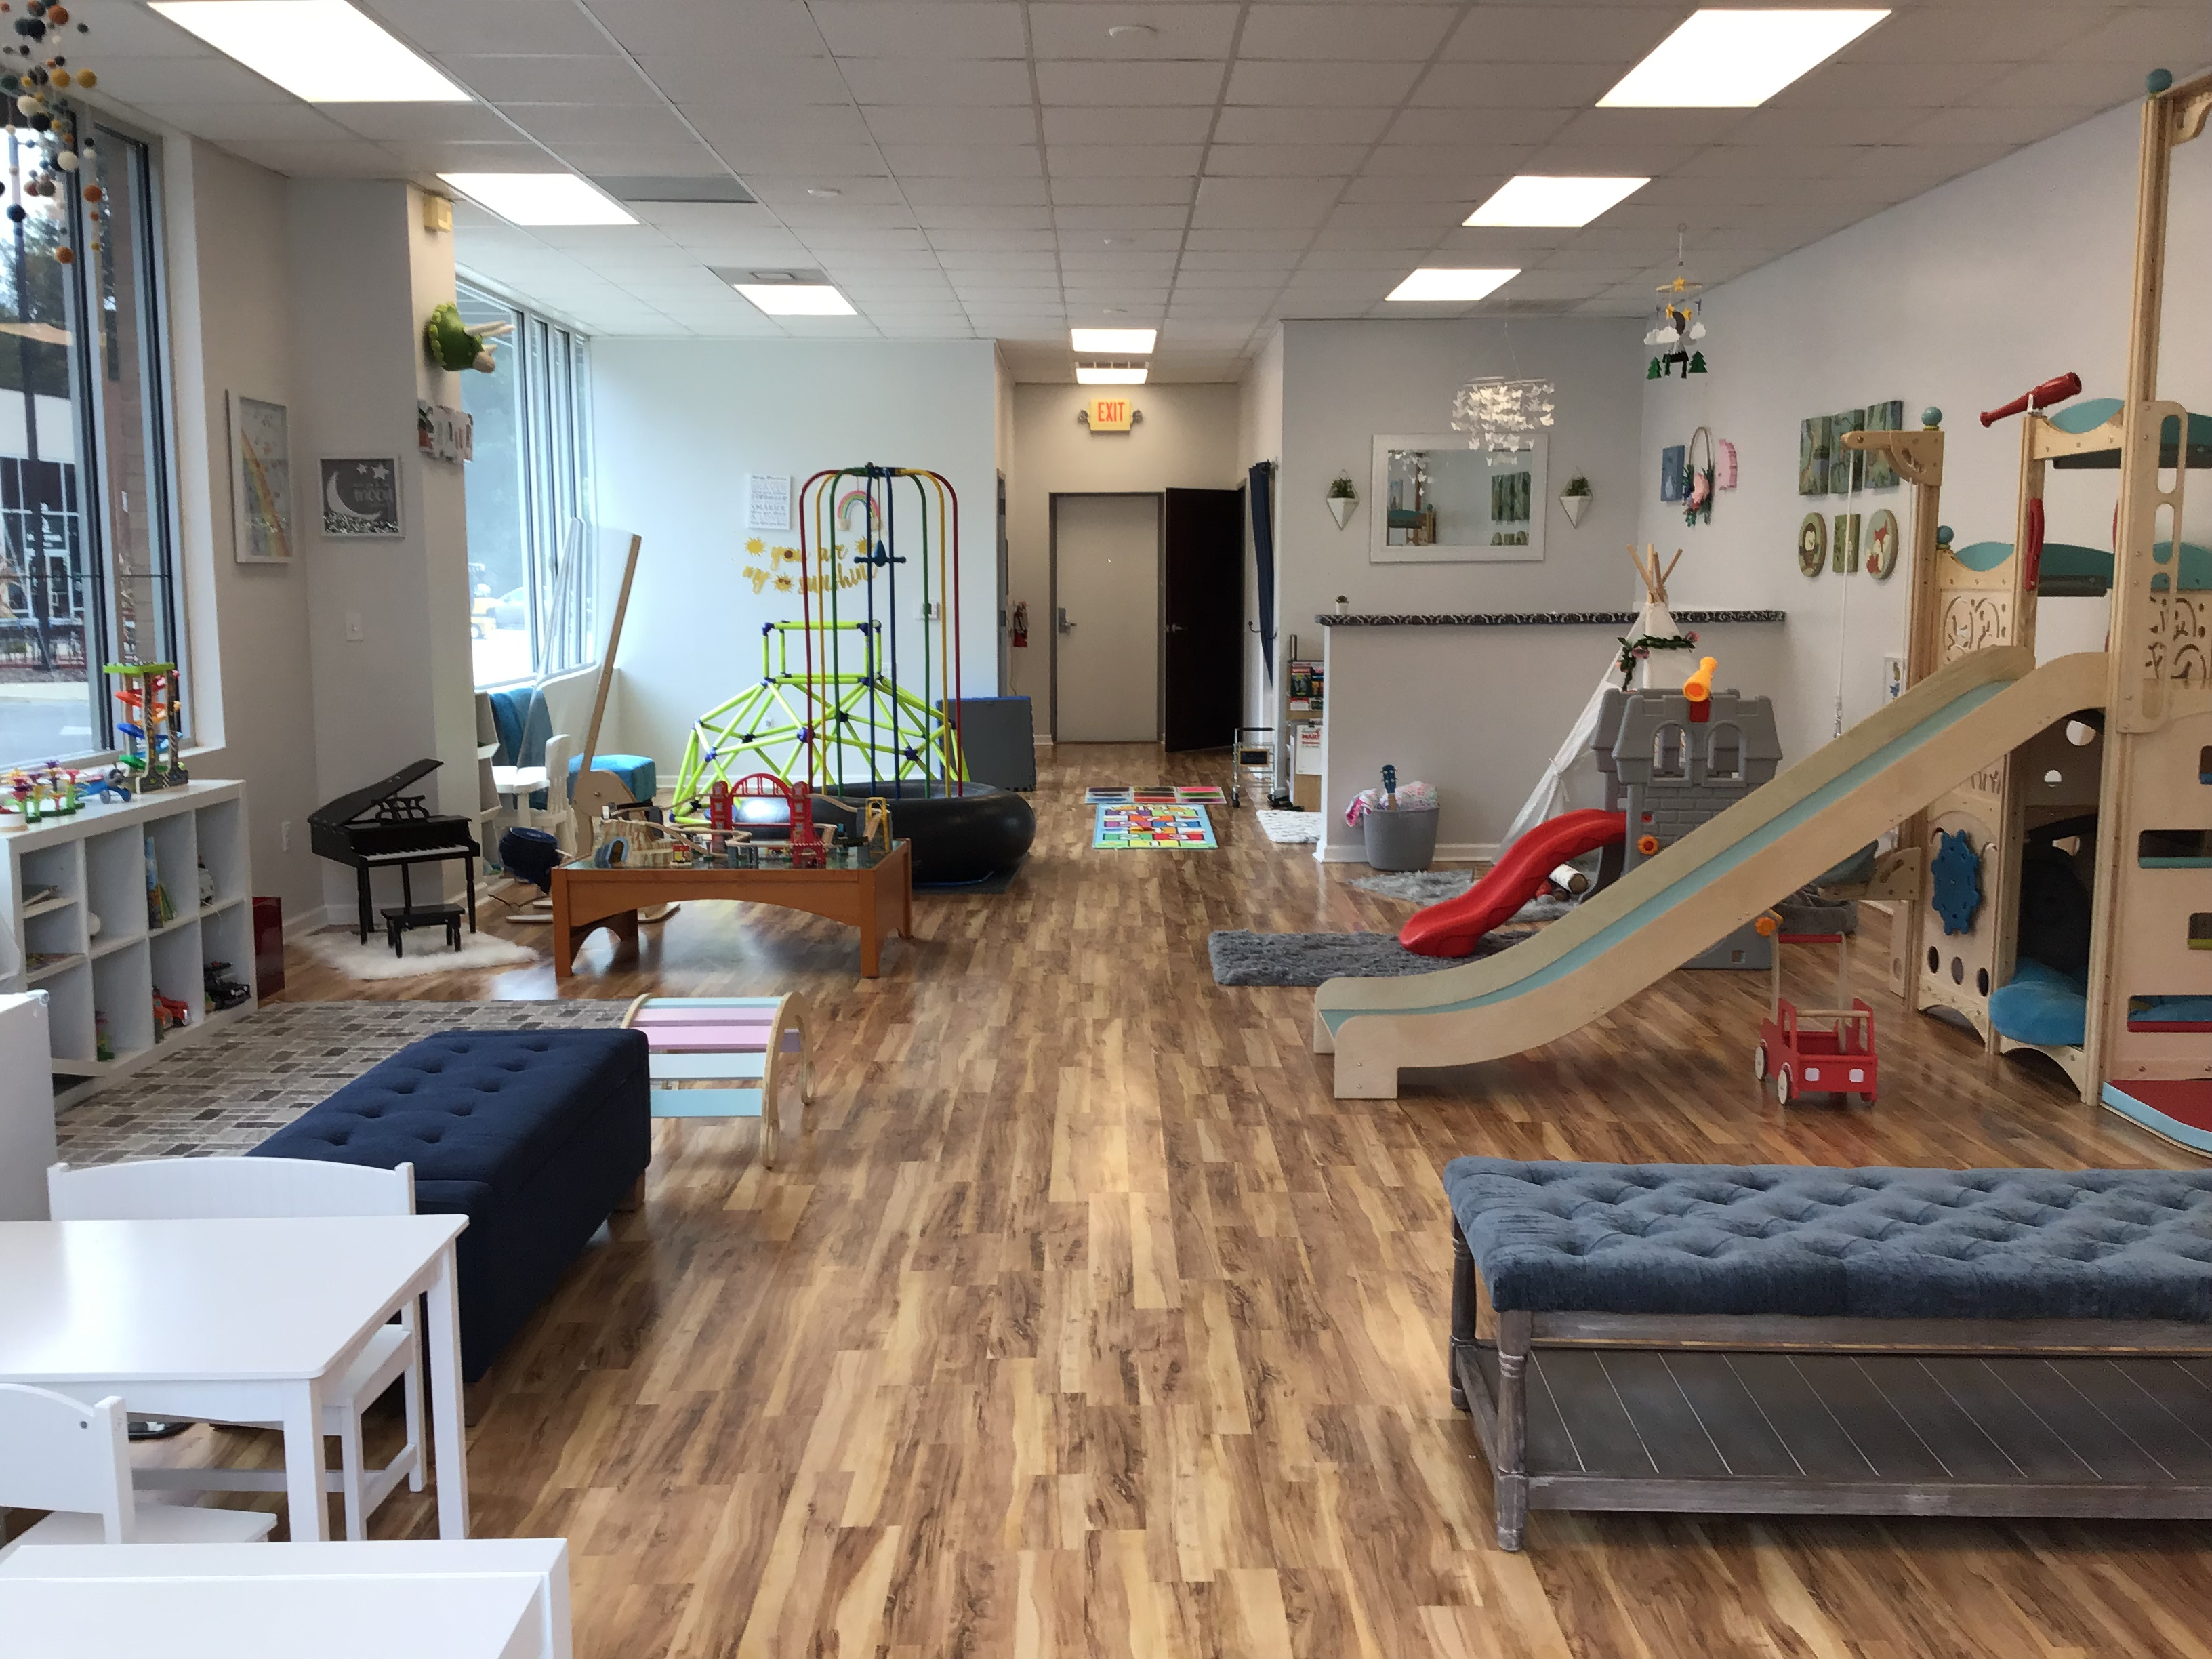 INDOOR PLAY SPACE